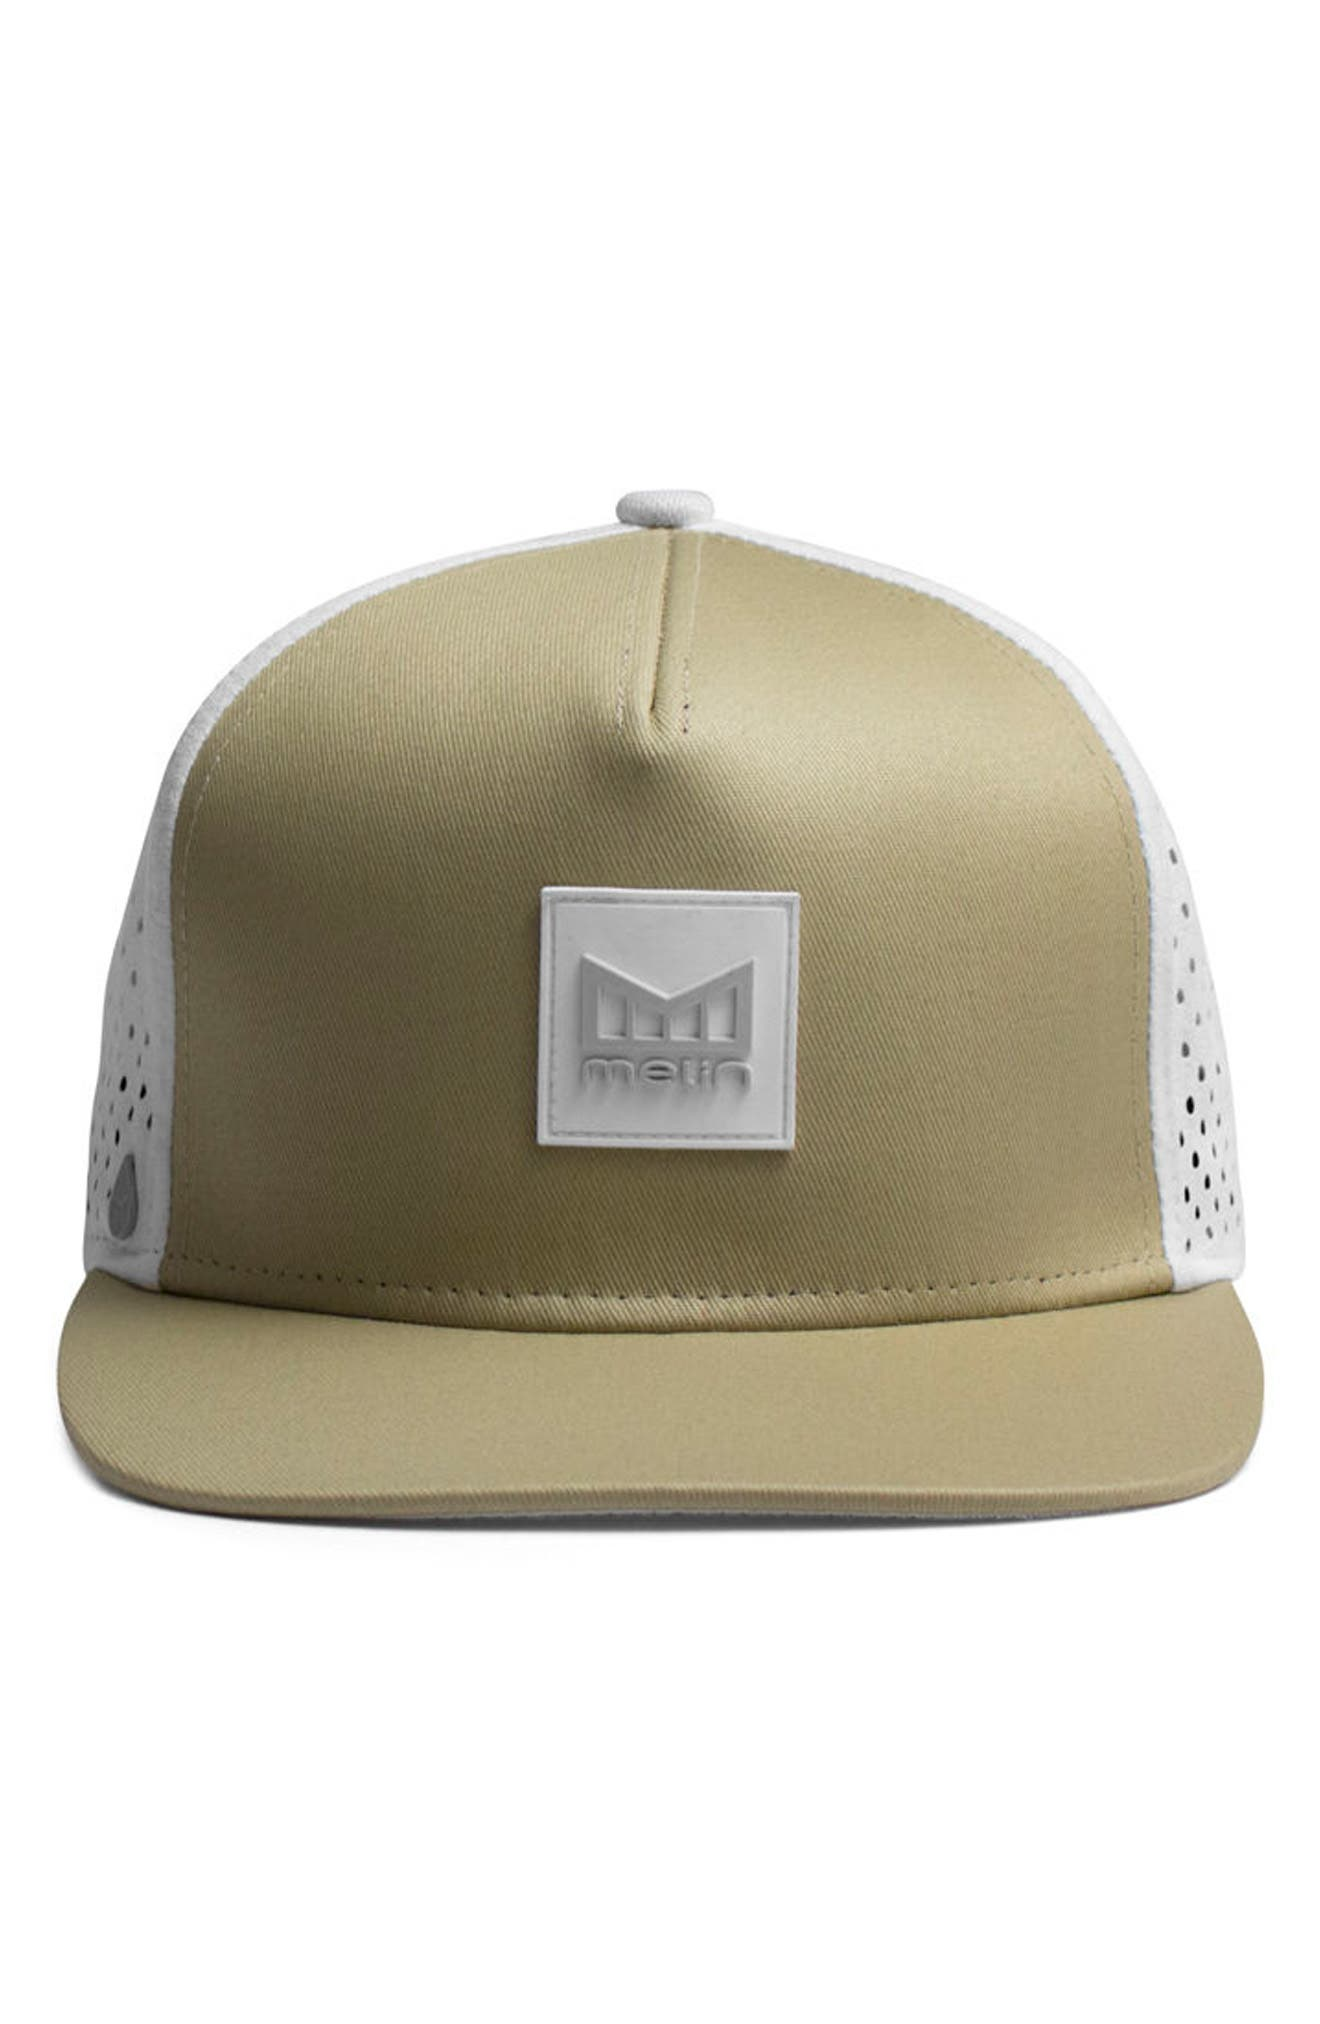 'The Nomad' Split Fit Snapback Baseball Cap,                             Alternate thumbnail 2, color,                             Sand